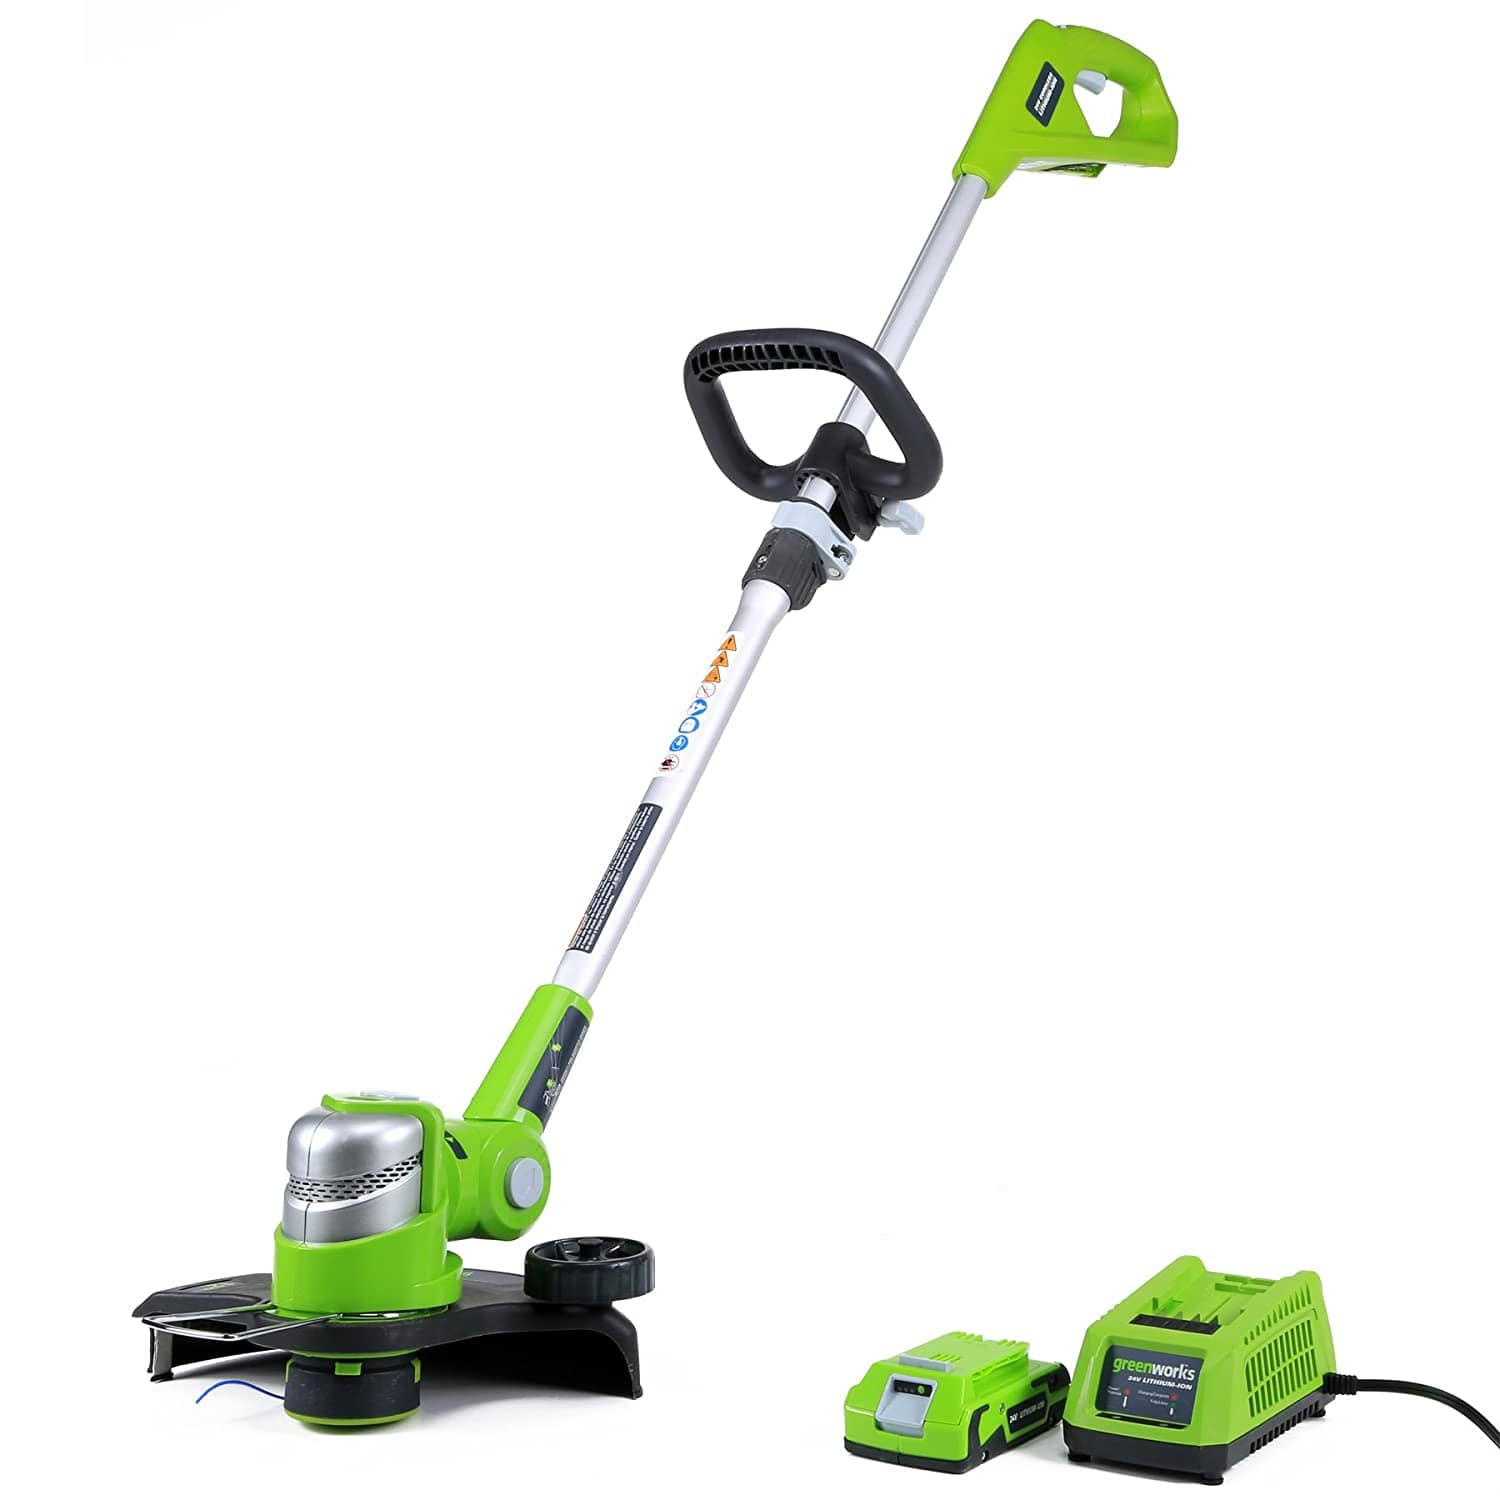 Greenworks 12-Inch 24V Cordless String Trimmer/Edger w/ 2.0Ah Battery $69.55 + Free Shipping